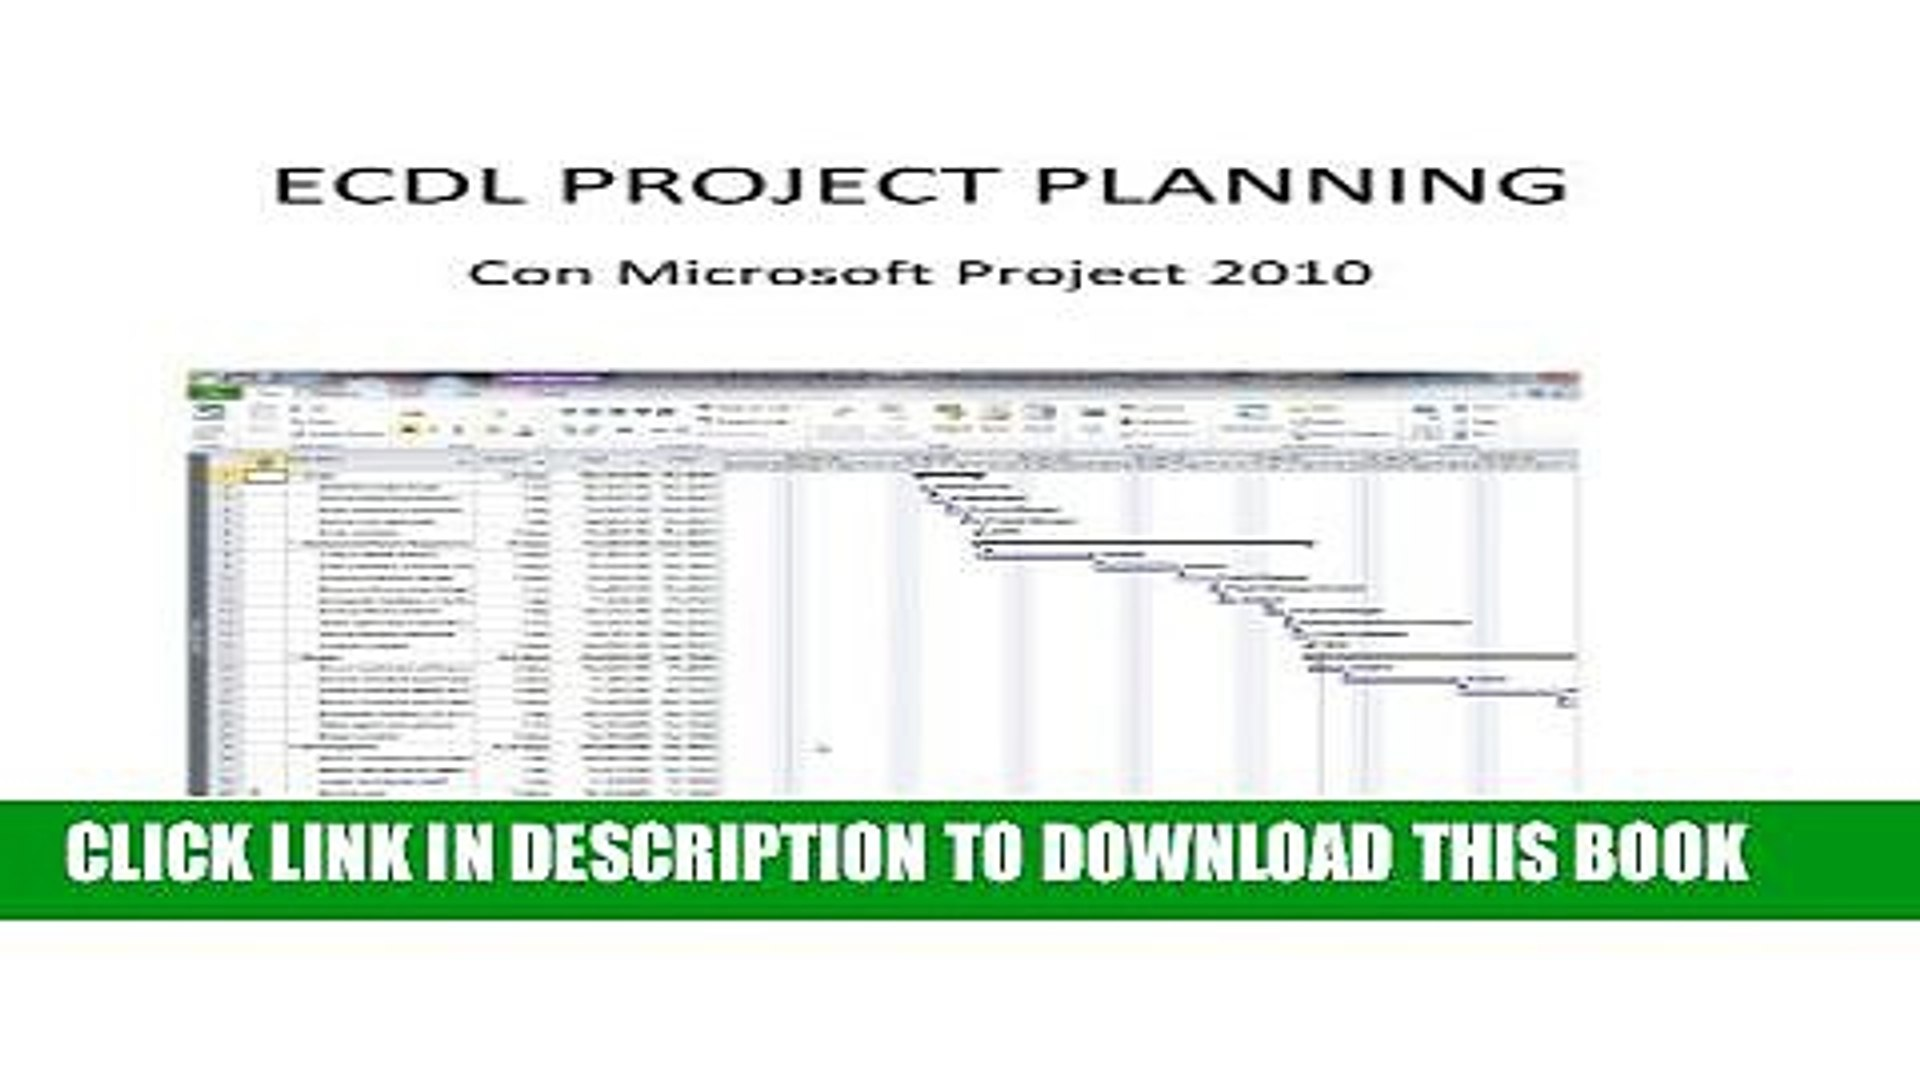 [PDF] Ecdl Project Planning : Con Microsoft Project 2010 (Italian Edition)  Popular Online